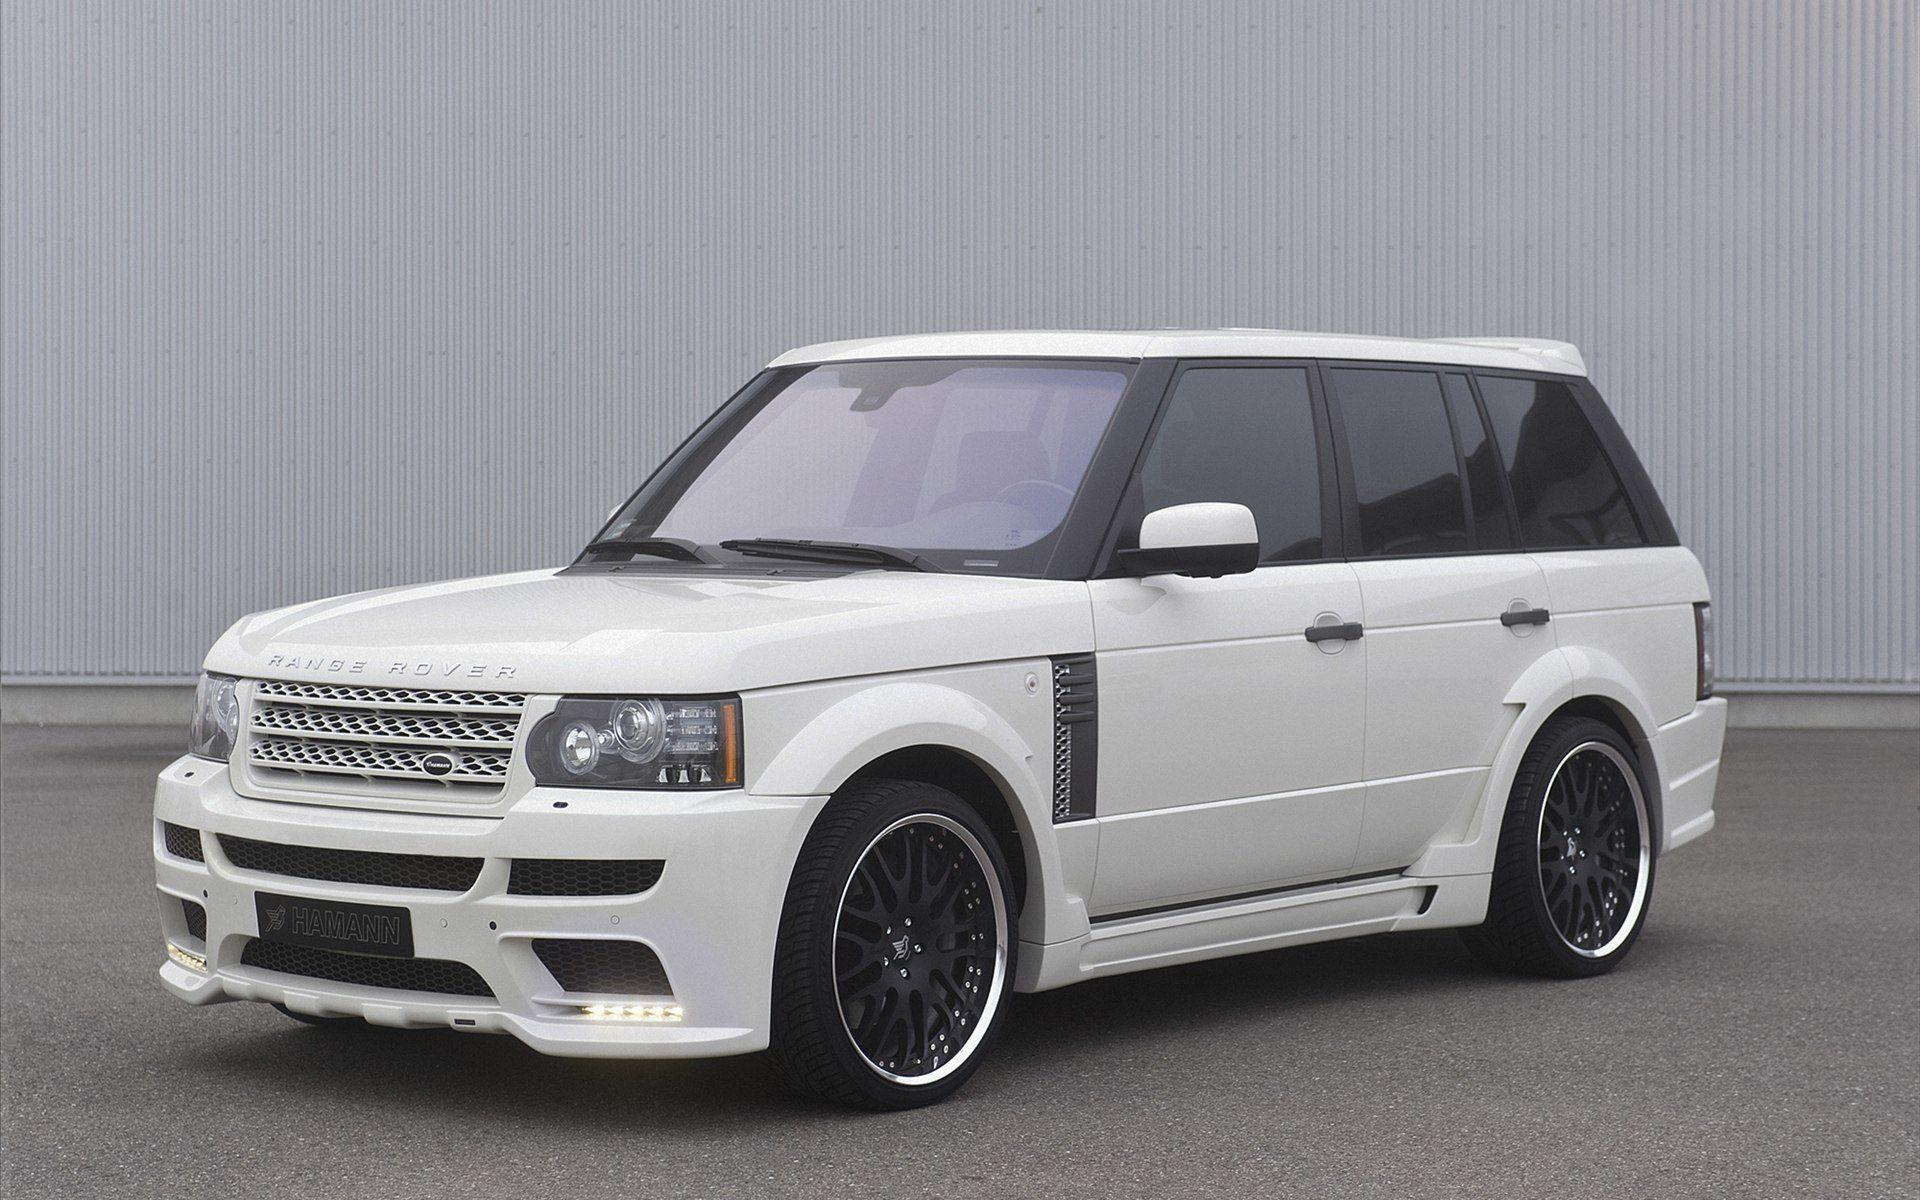 152 Range Rover HD Wallpapers | Backgrounds - Wallpaper Abyss